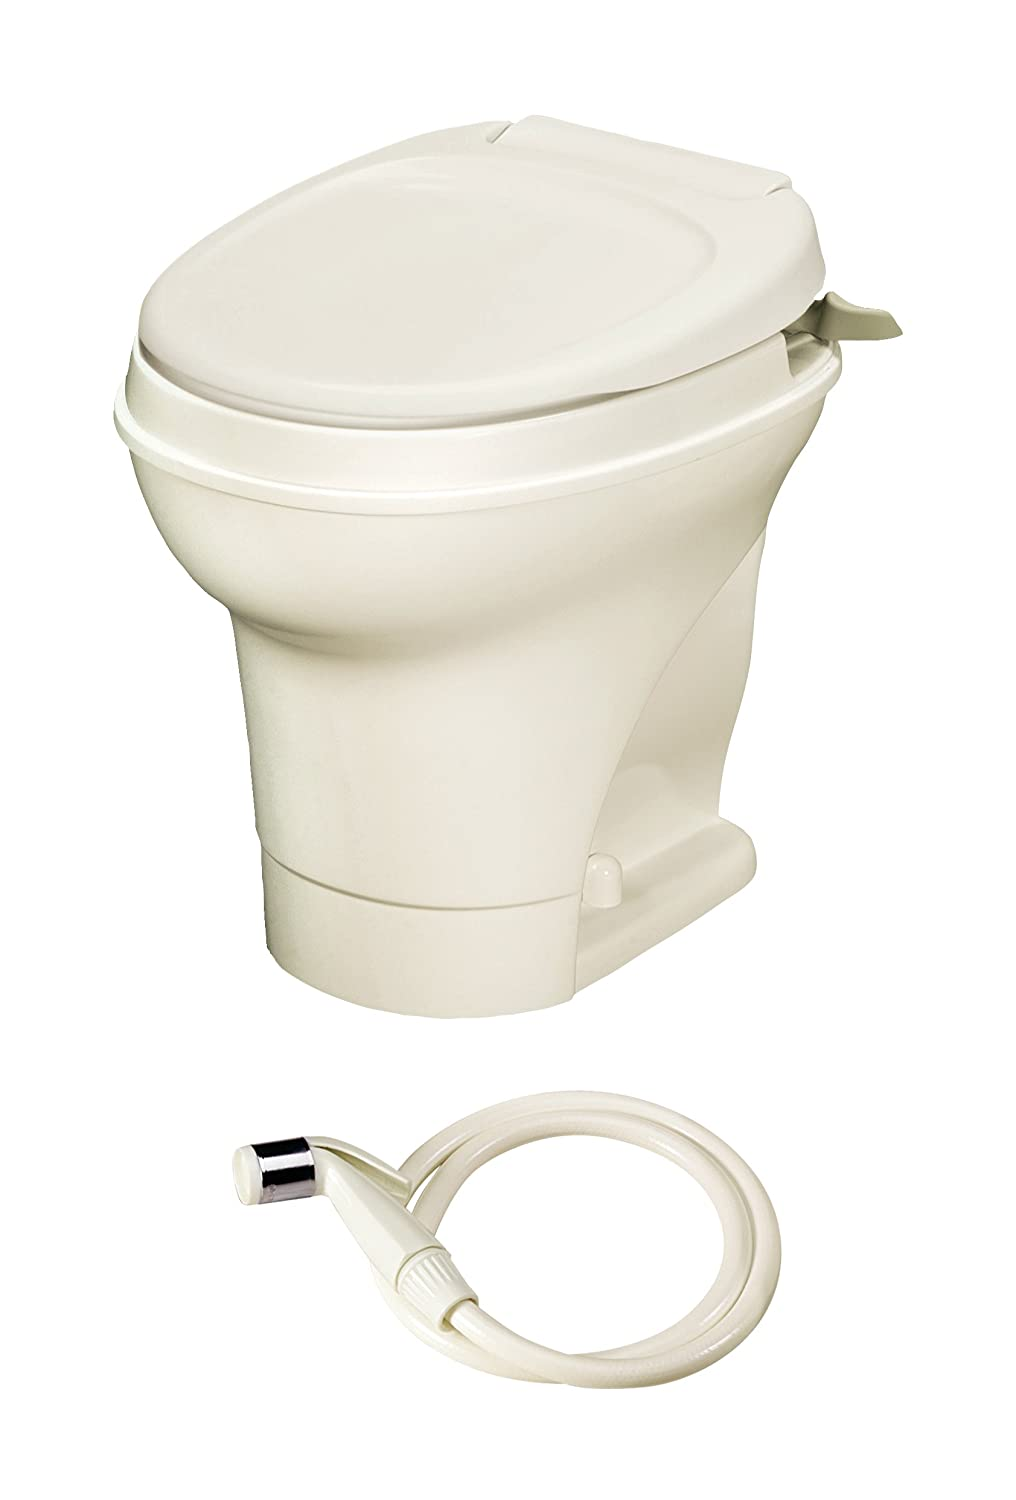 Thetford 31675 Aqua Magic V White High Hand Flush with Water Saver NOSYJ 25021709